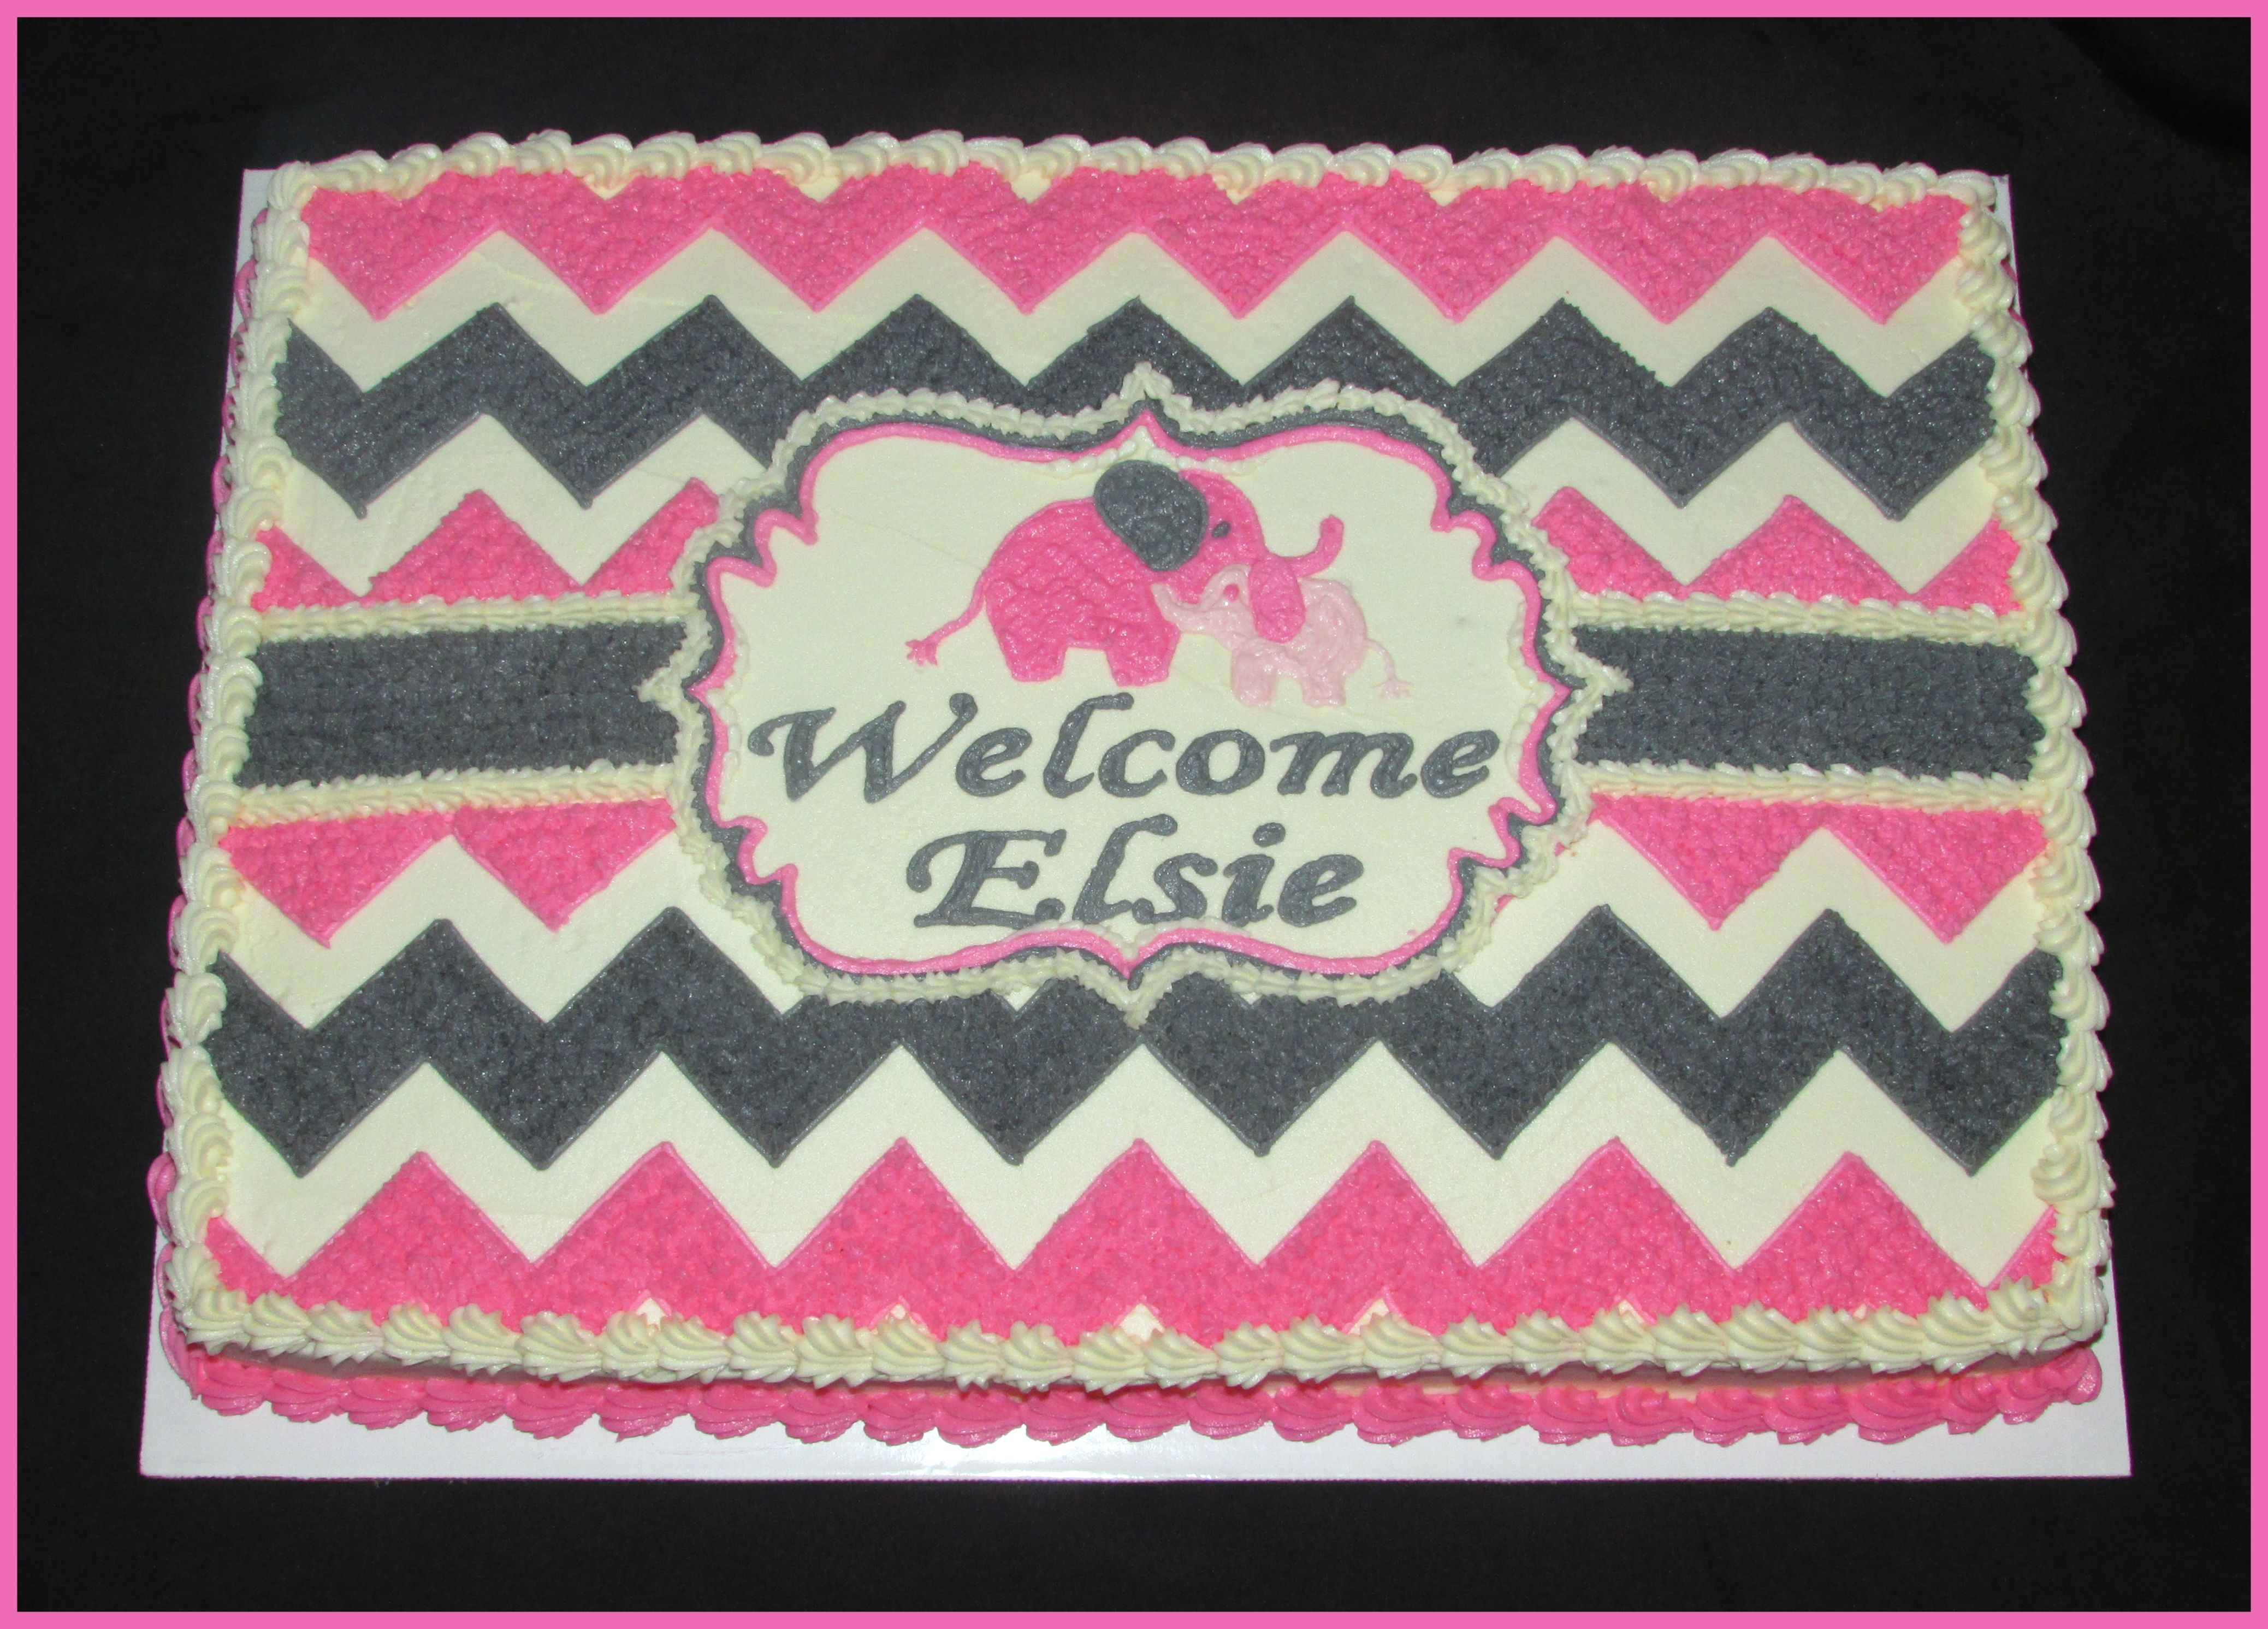 Pink And Gray / Chevron / Baby Elephants / Girlu0027s Baby Shower Cake    Buttercream Icing Only Here! This Is On A Sheet Cake.